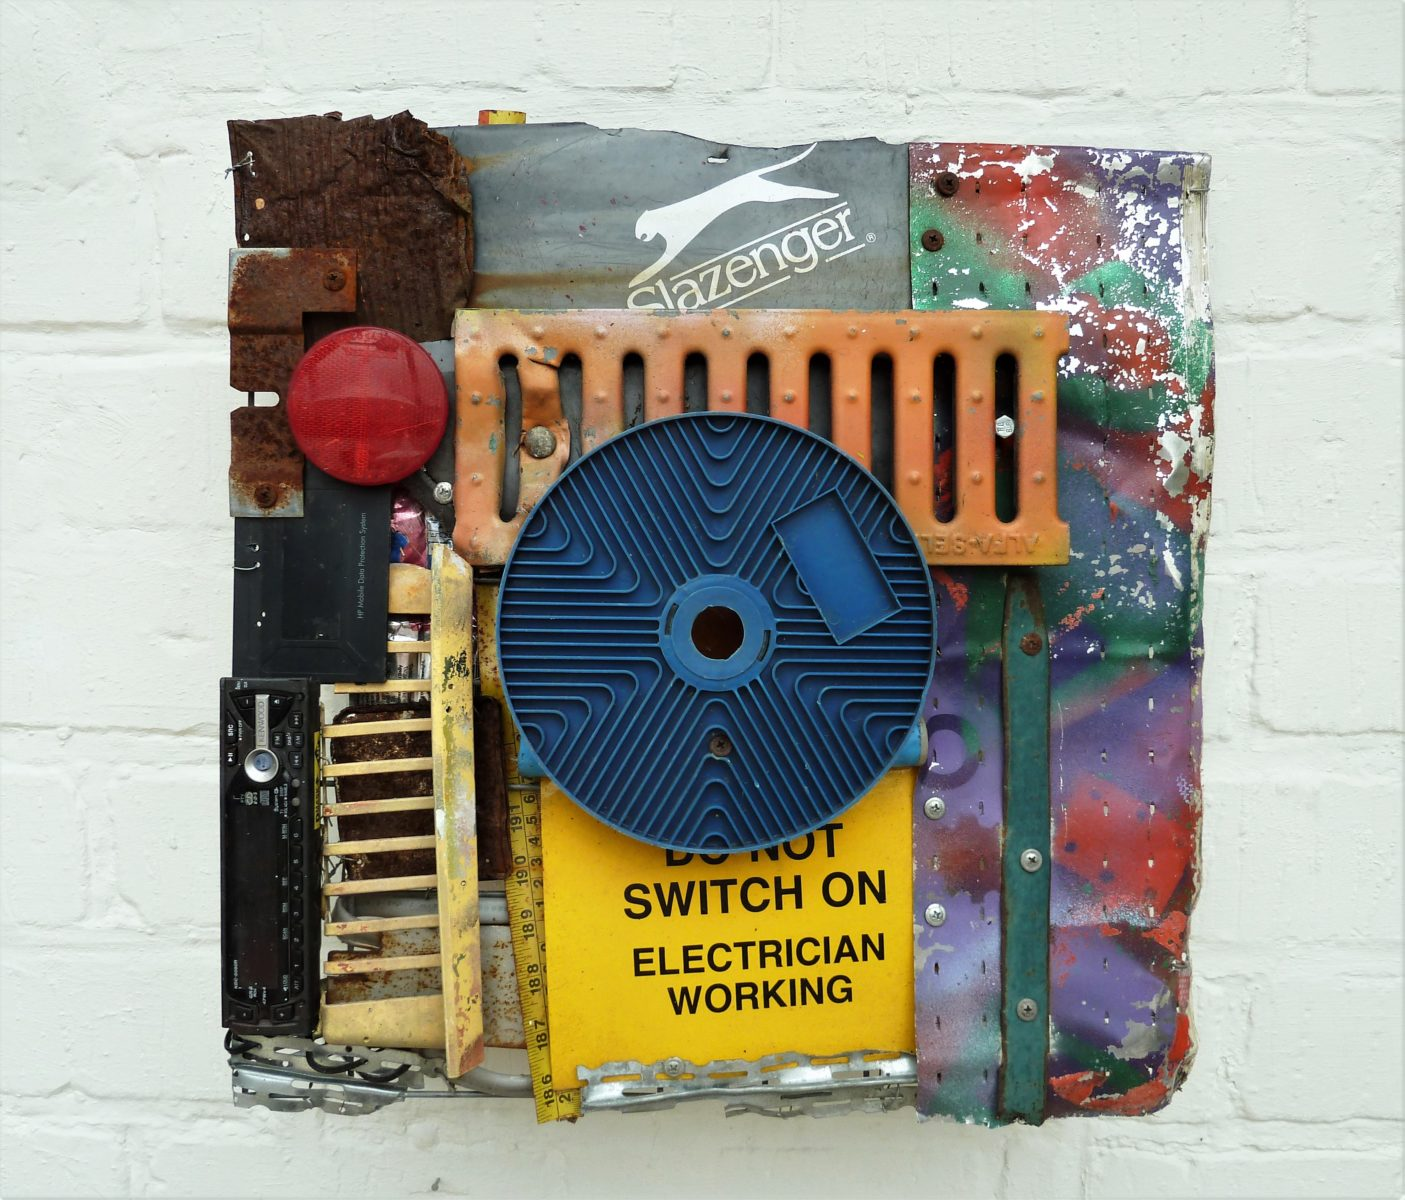 sculpture using metal objects including grill, slazenger icon and don not switch on sign